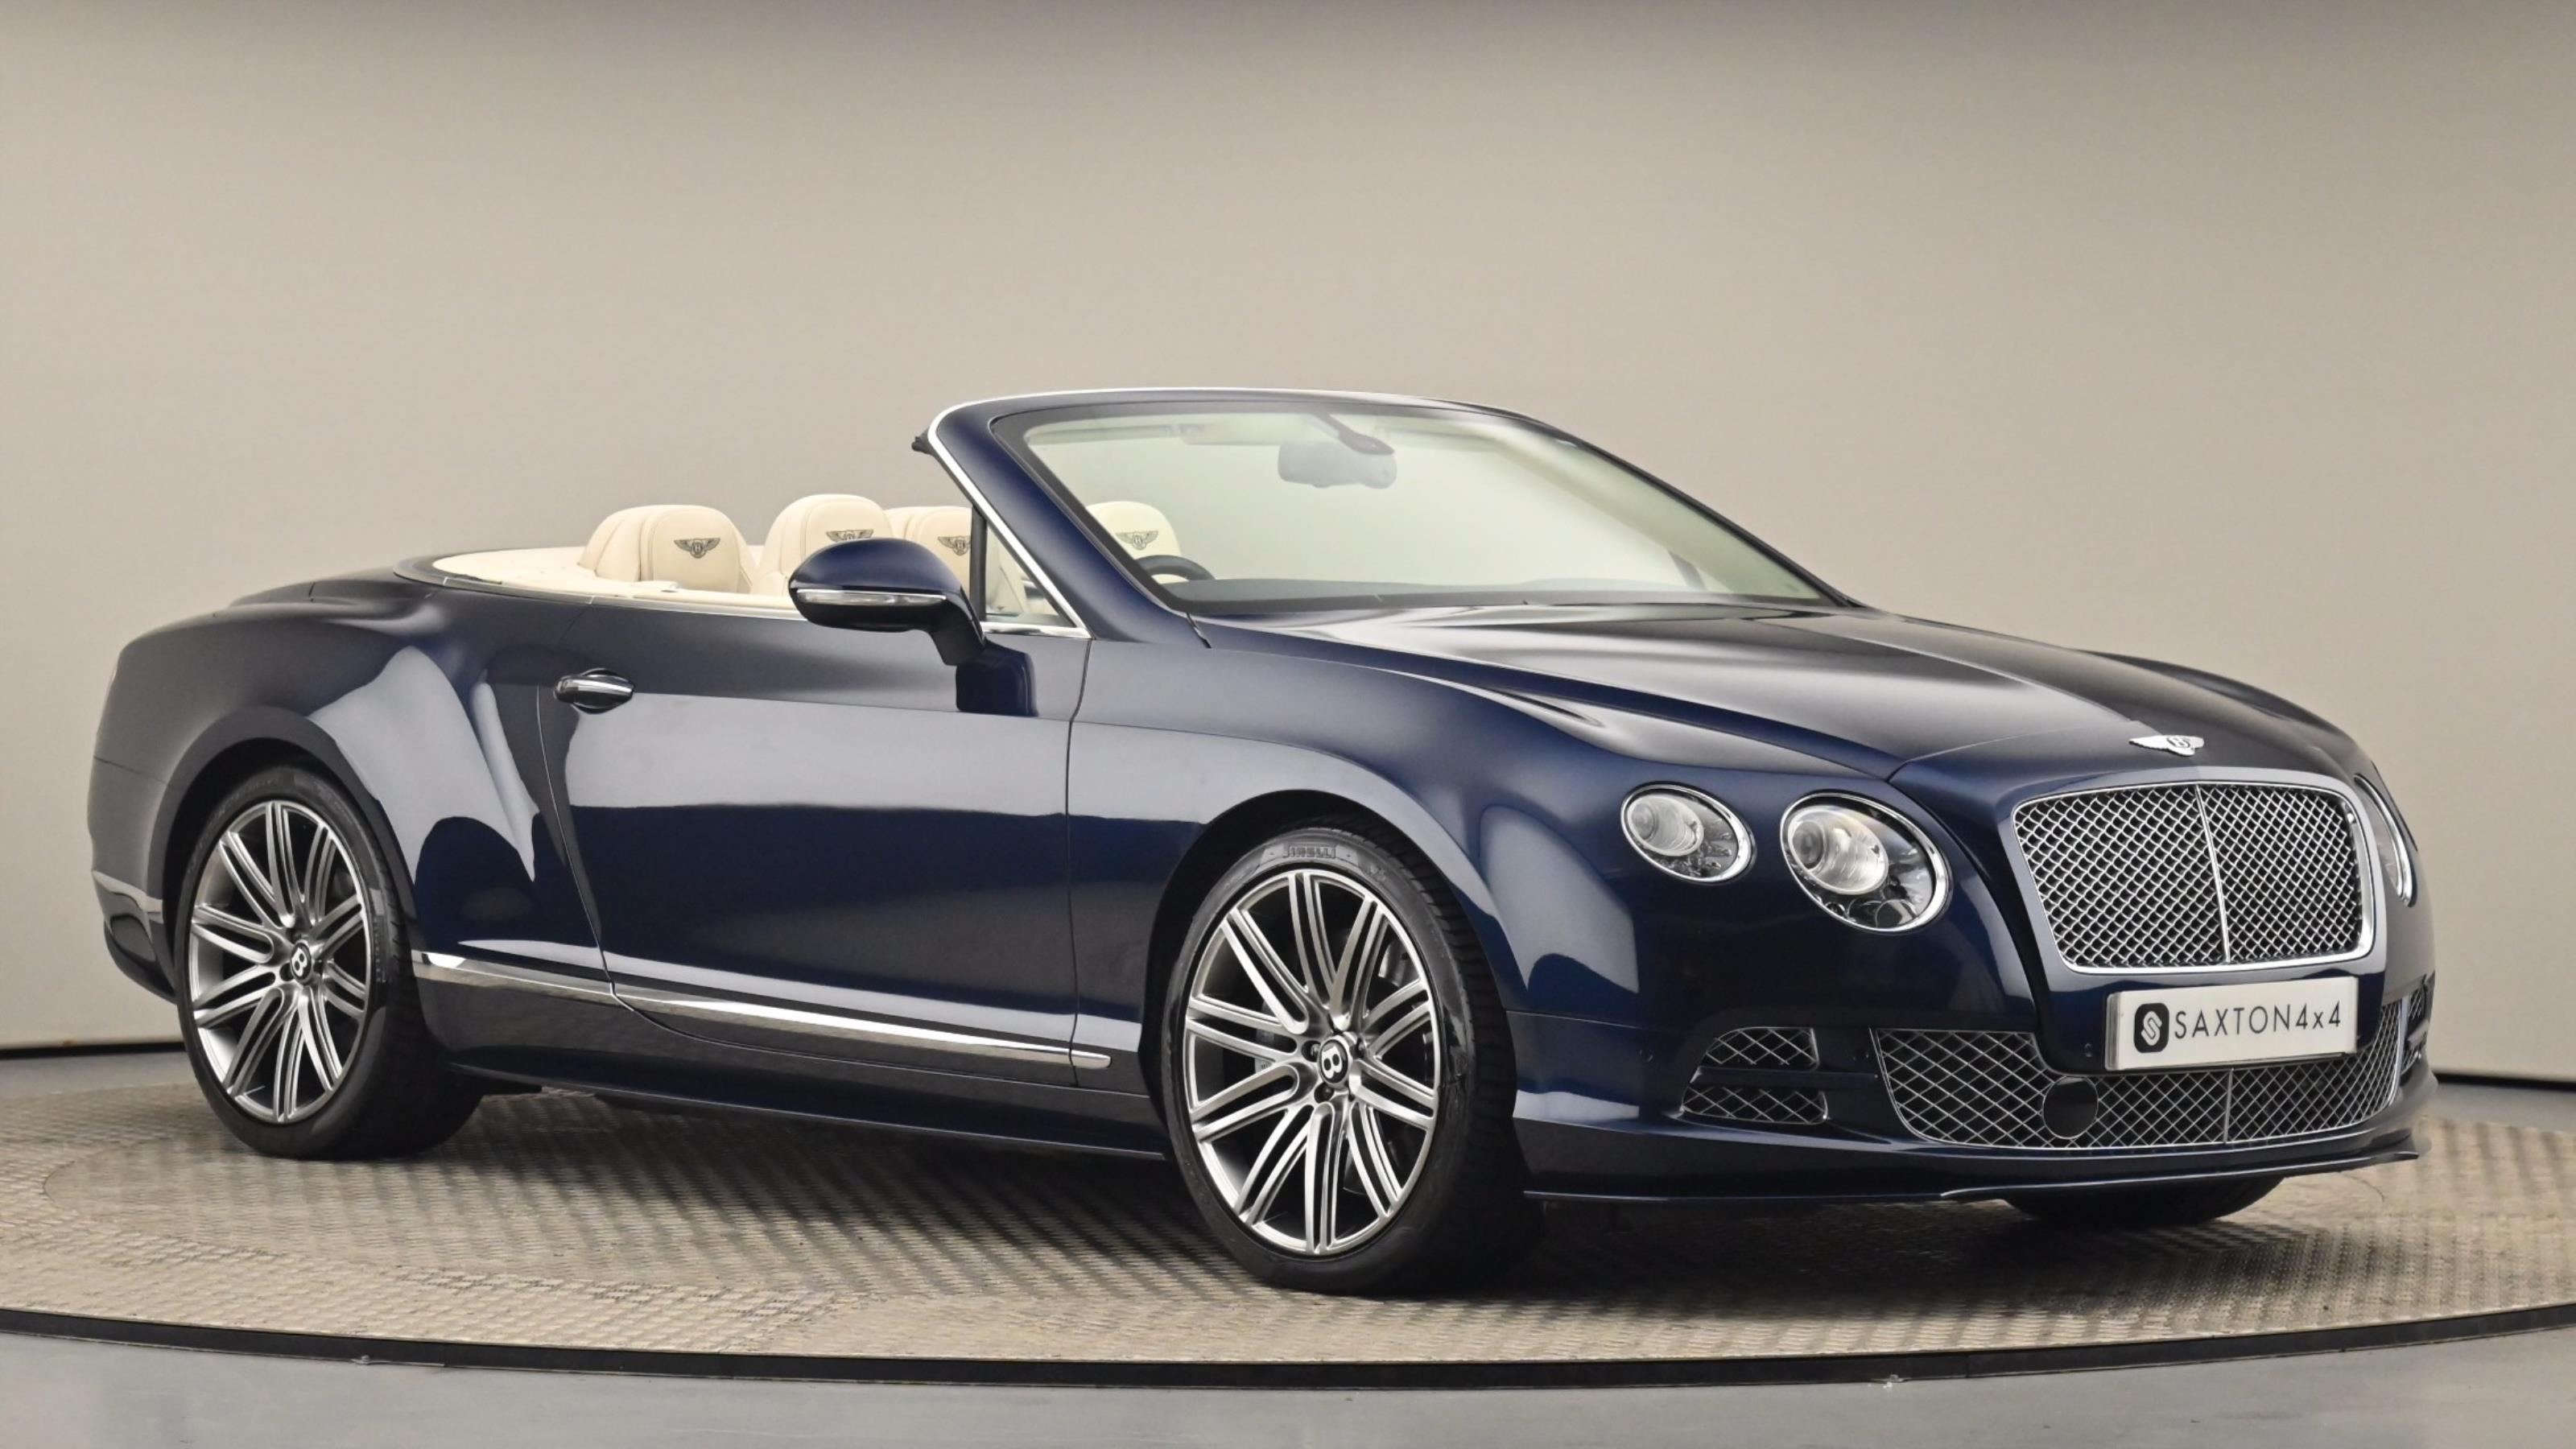 Used 2015 Bentley CONTINENTAL GTC 6.0 W12 Speed 2dr Auto BLUE at Saxton4x4